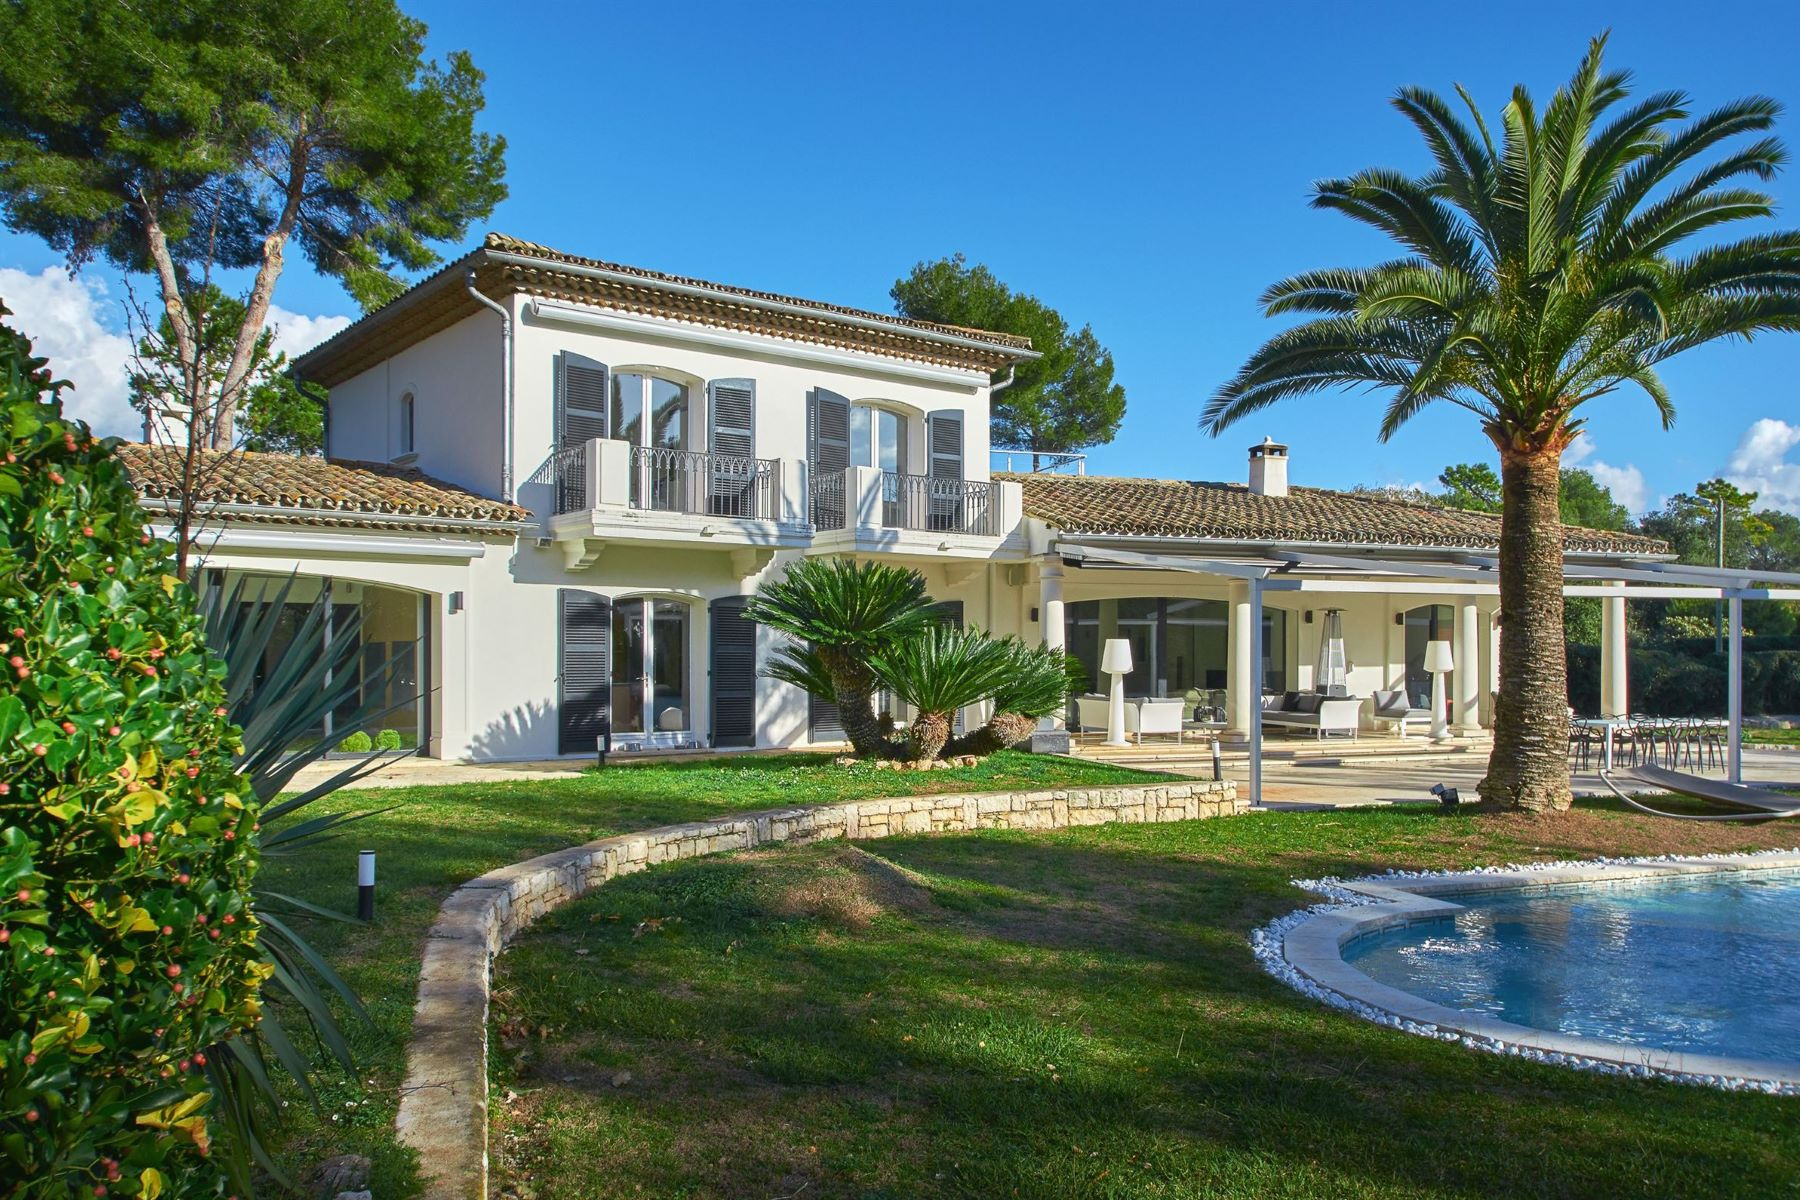 Single Family Homes por un Venta en Luxurious modern villa 470 sq.m in Saint-Paul-de-Vence in a sought after area Other Provence-Alpes-Cote D'Azur, Provincia - Alpes - Costa Azul 06570 Francia